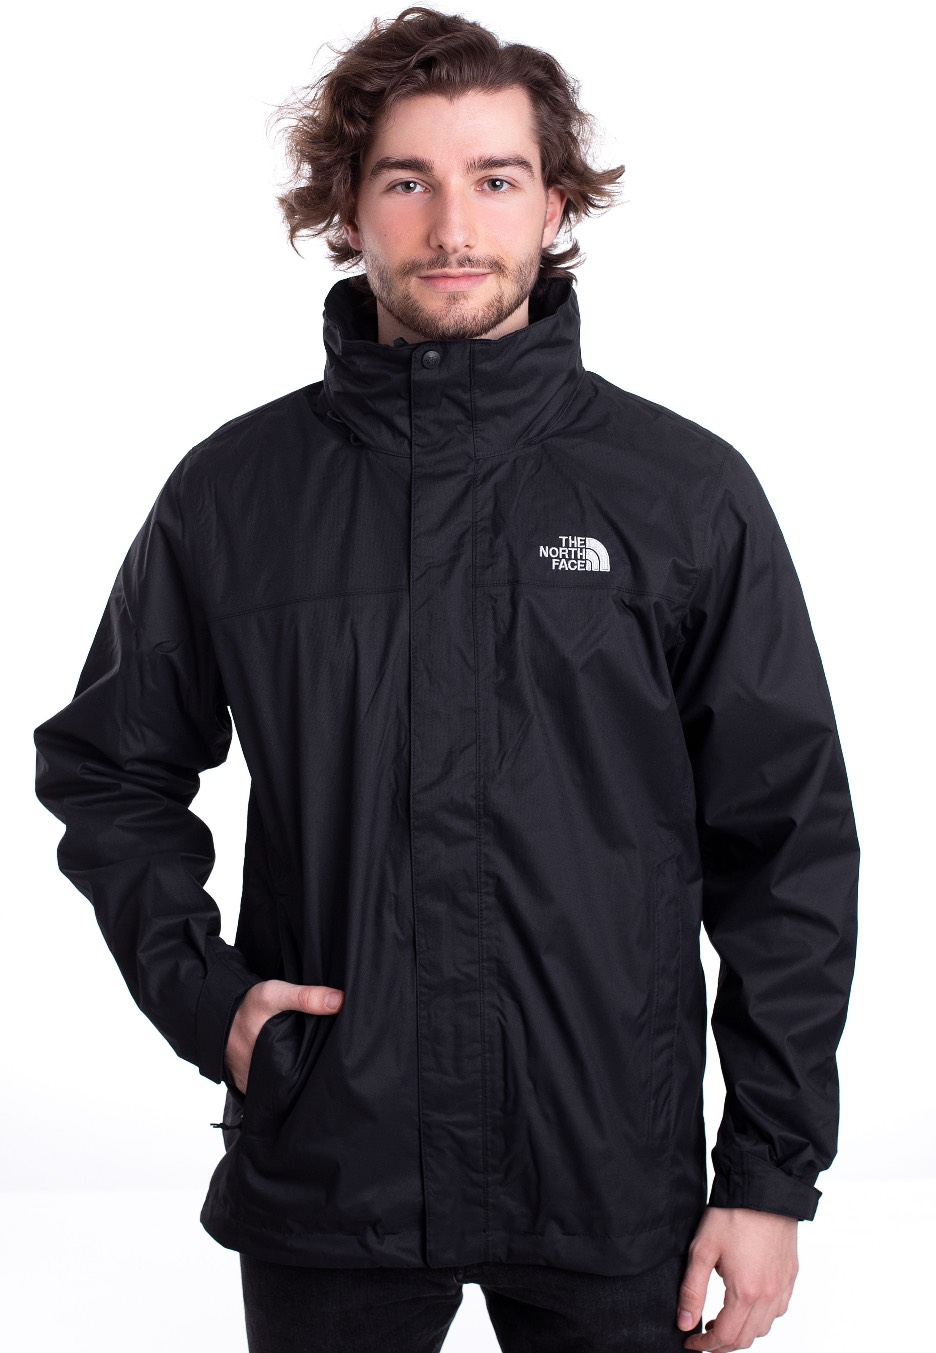 64ecc7f205ef The North Face - Evolve II Triclimate TNF Black - Jacket - Streetwear Shop  - Impericon.com AU